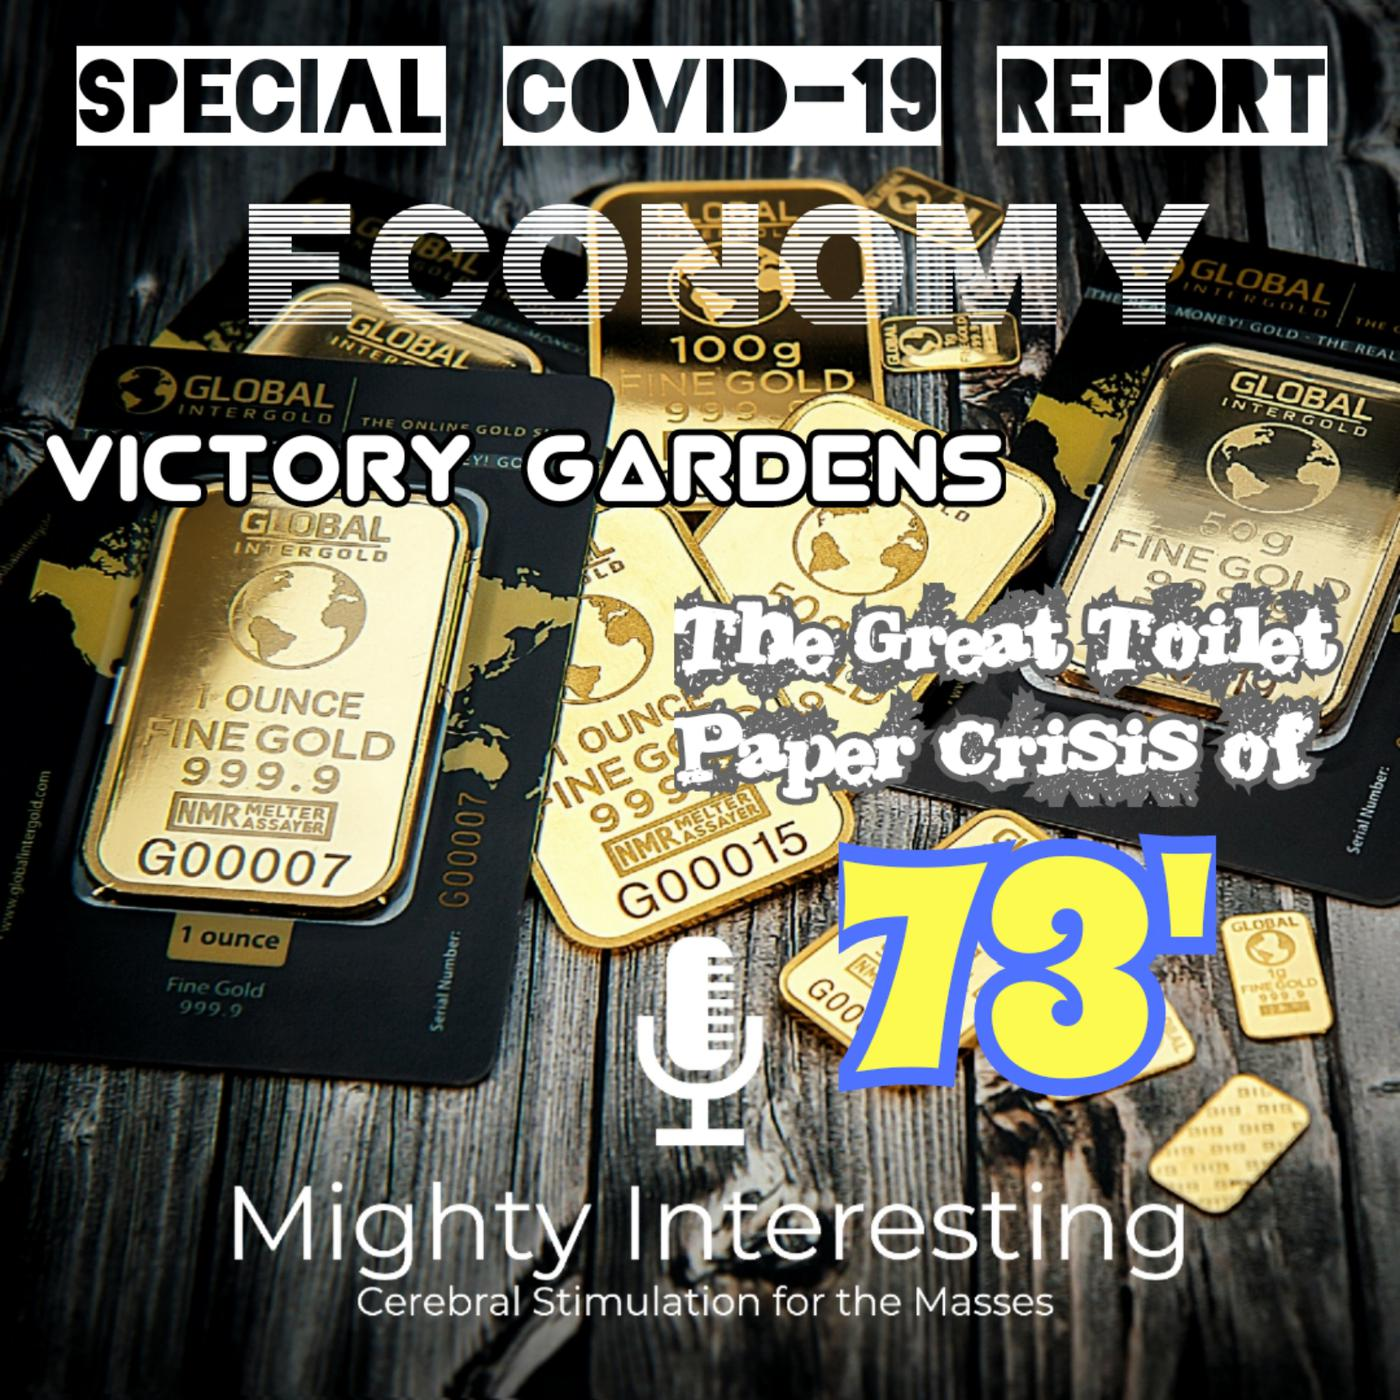 Special COVID-19 Report: Economy, Victory Gardens, and the Great Toilet Paper Crisis of 73'